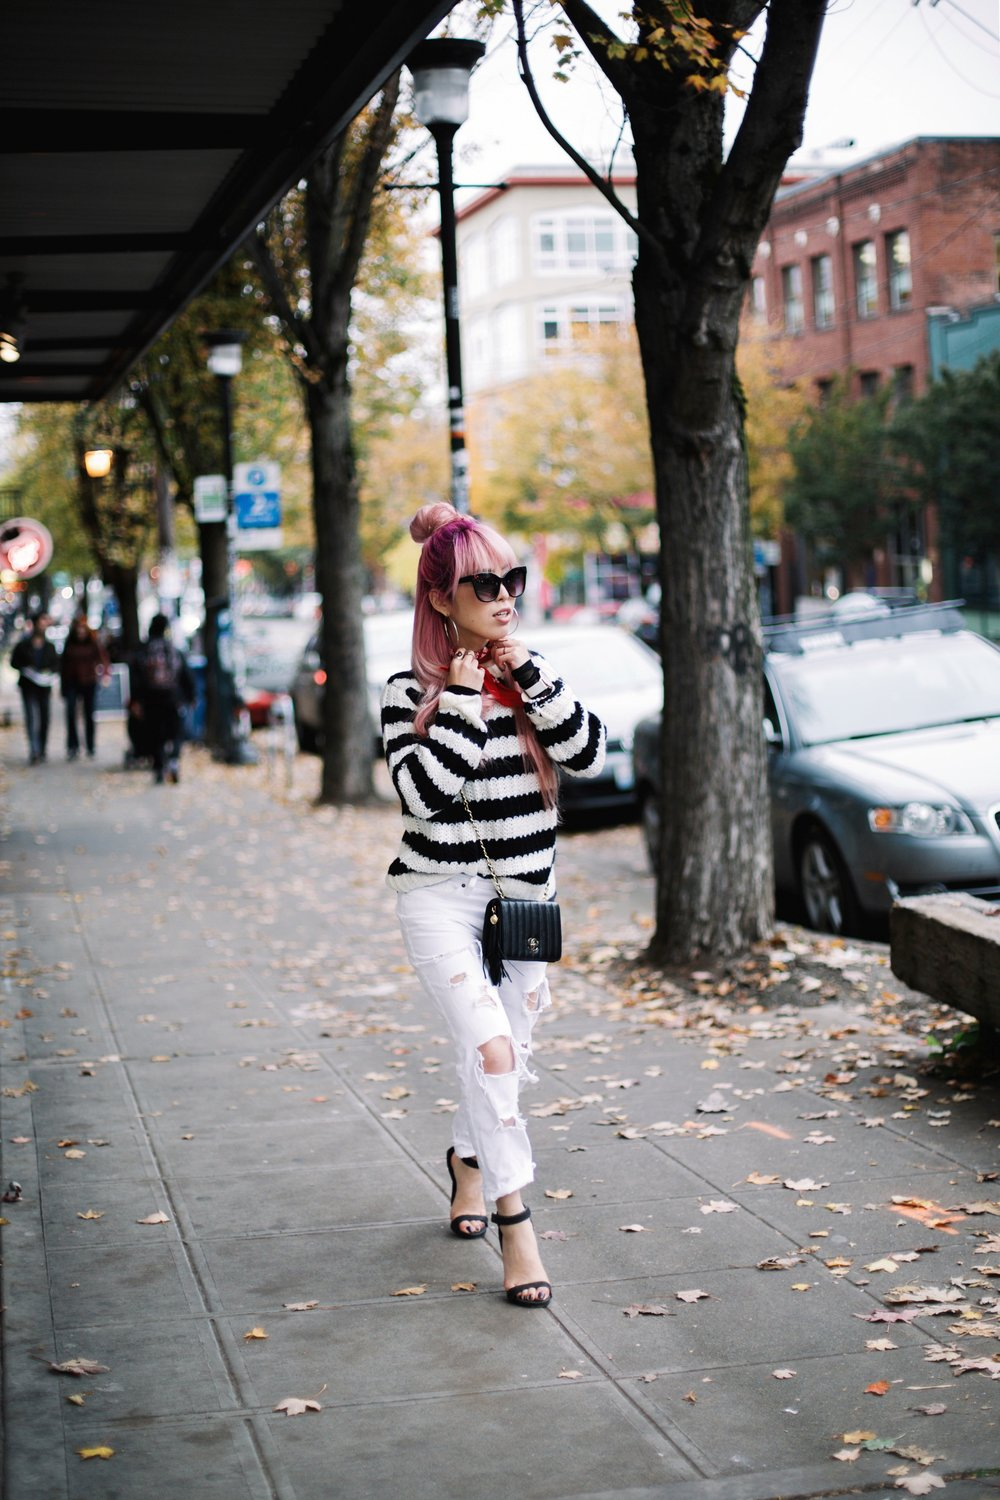 Urban Outfitters Sunglasses & Red bandana-Who What Wear Striped Crew Sweater-Target-Zara Distressed white boyfriend Jeans & Black Sheer Top-Vintage Chanel Crossbody Bag-ASOS Ankle Strap Sandals-Christian Paul Grid White Watch-Aika's Love Closet-Seattle Fashion Blogger-Japanese-Pink Hair-Half Top Knot Hair 11